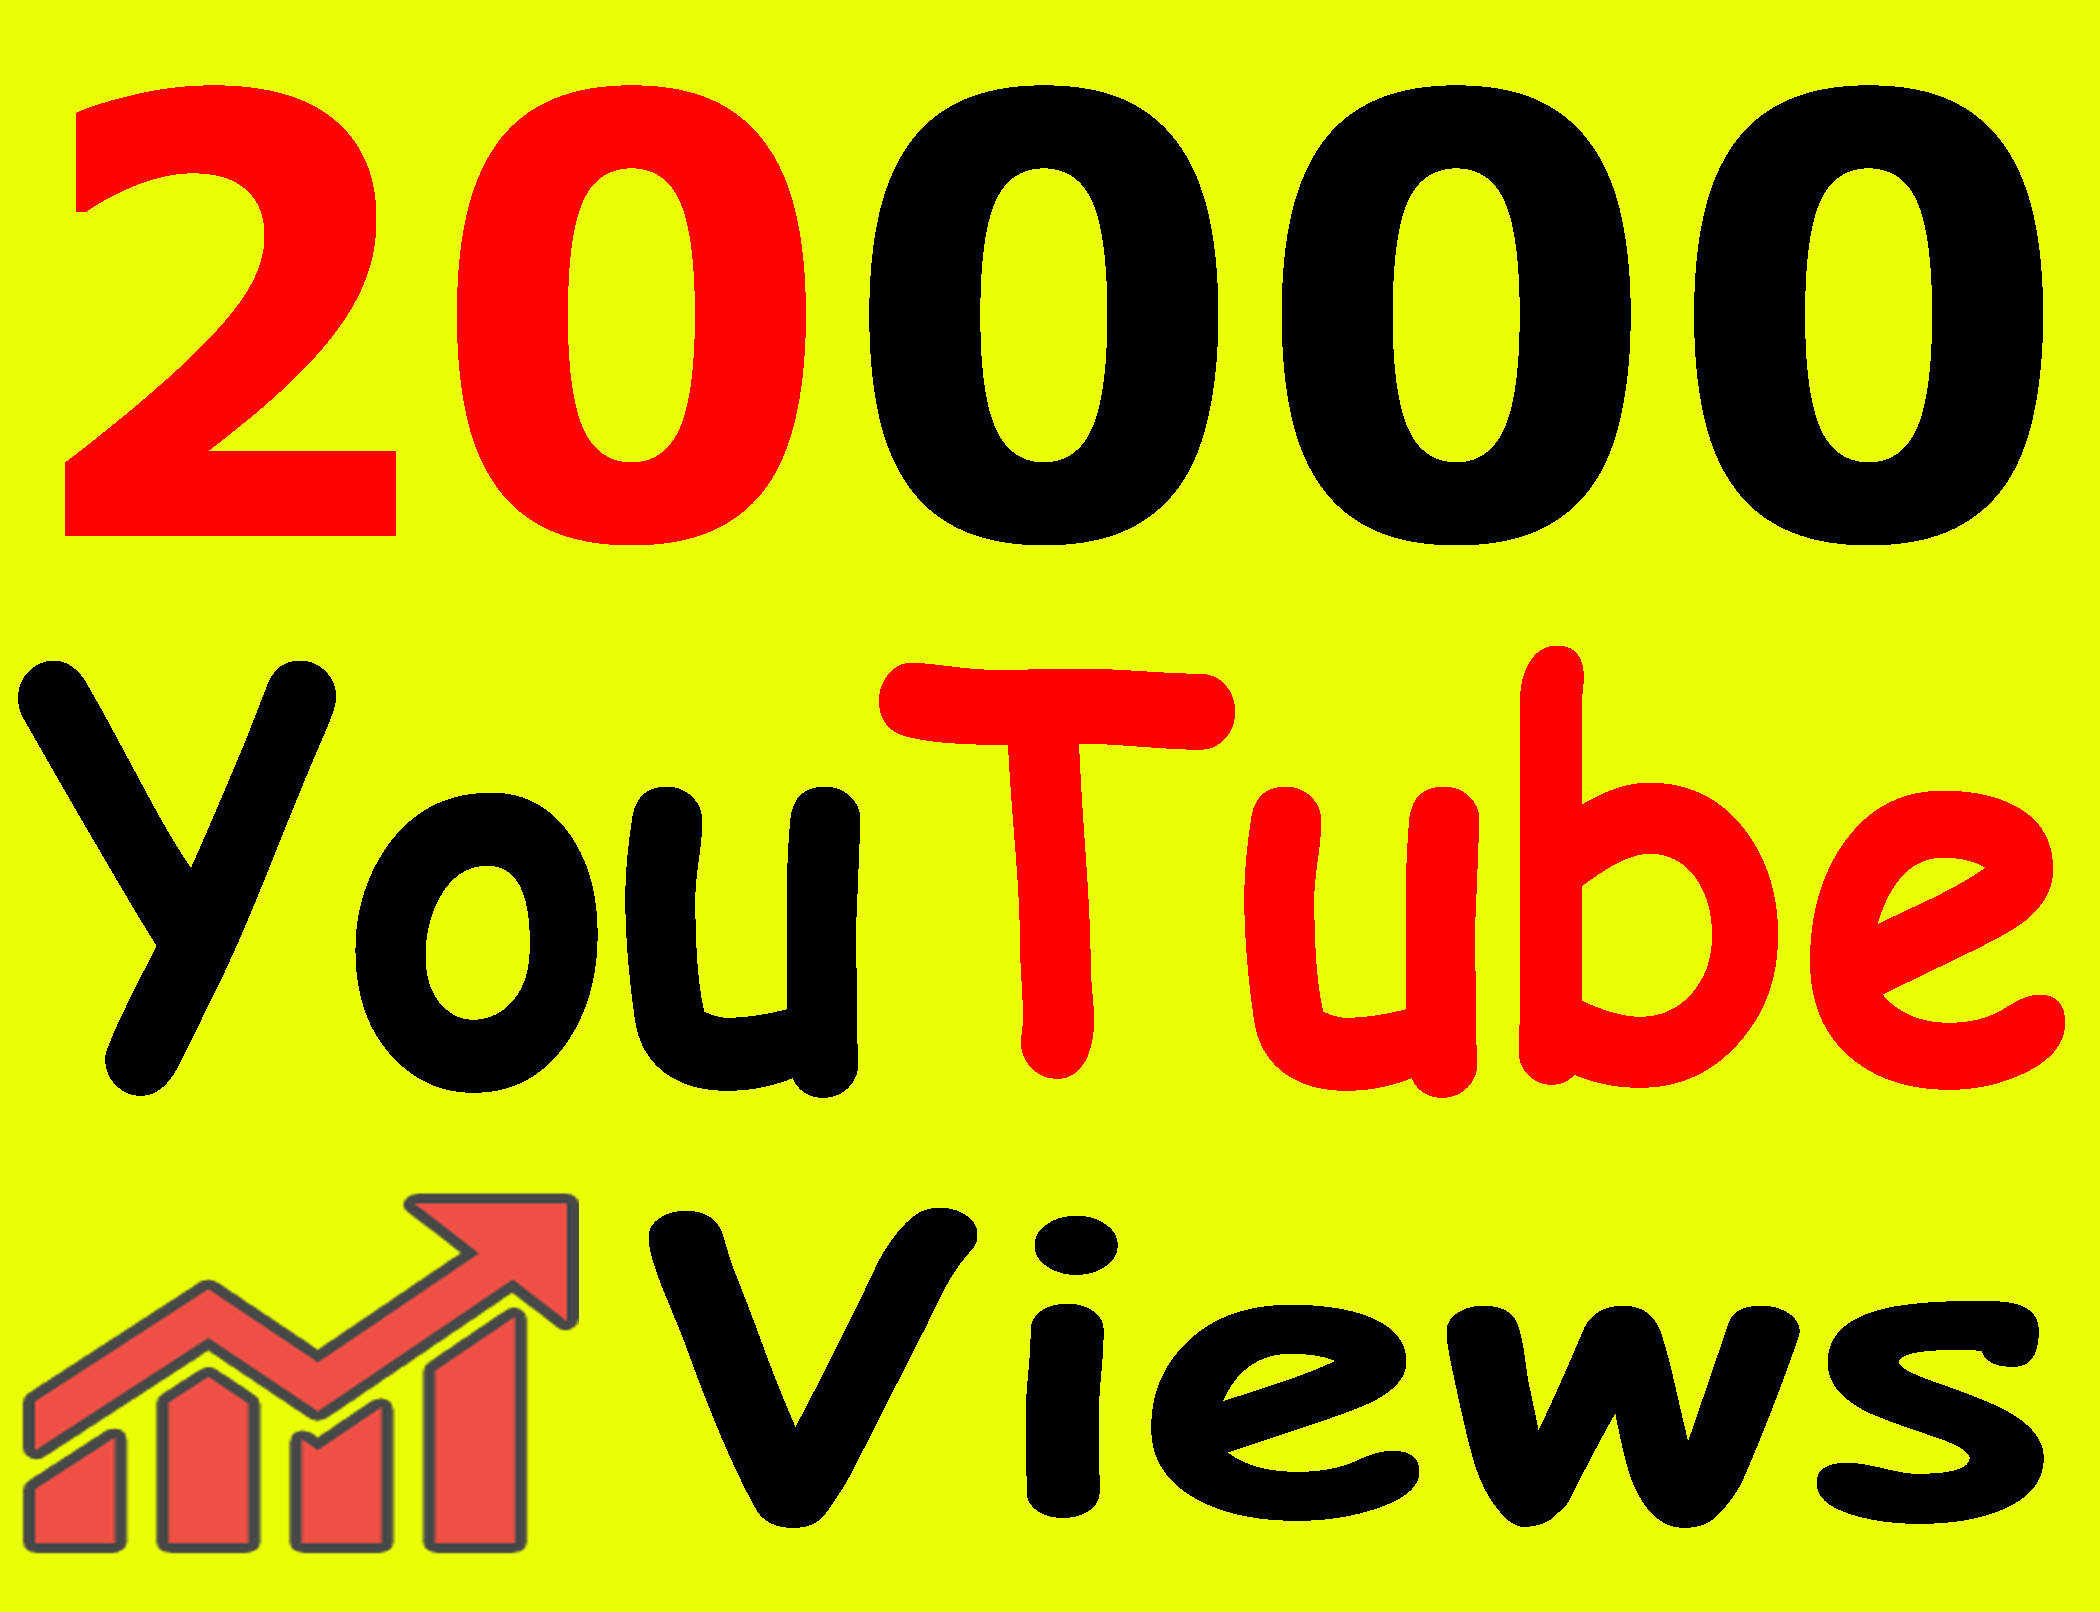 Give 20,000+ Views Full Retention Safe Lifetime Guarantee with bonus Li kes